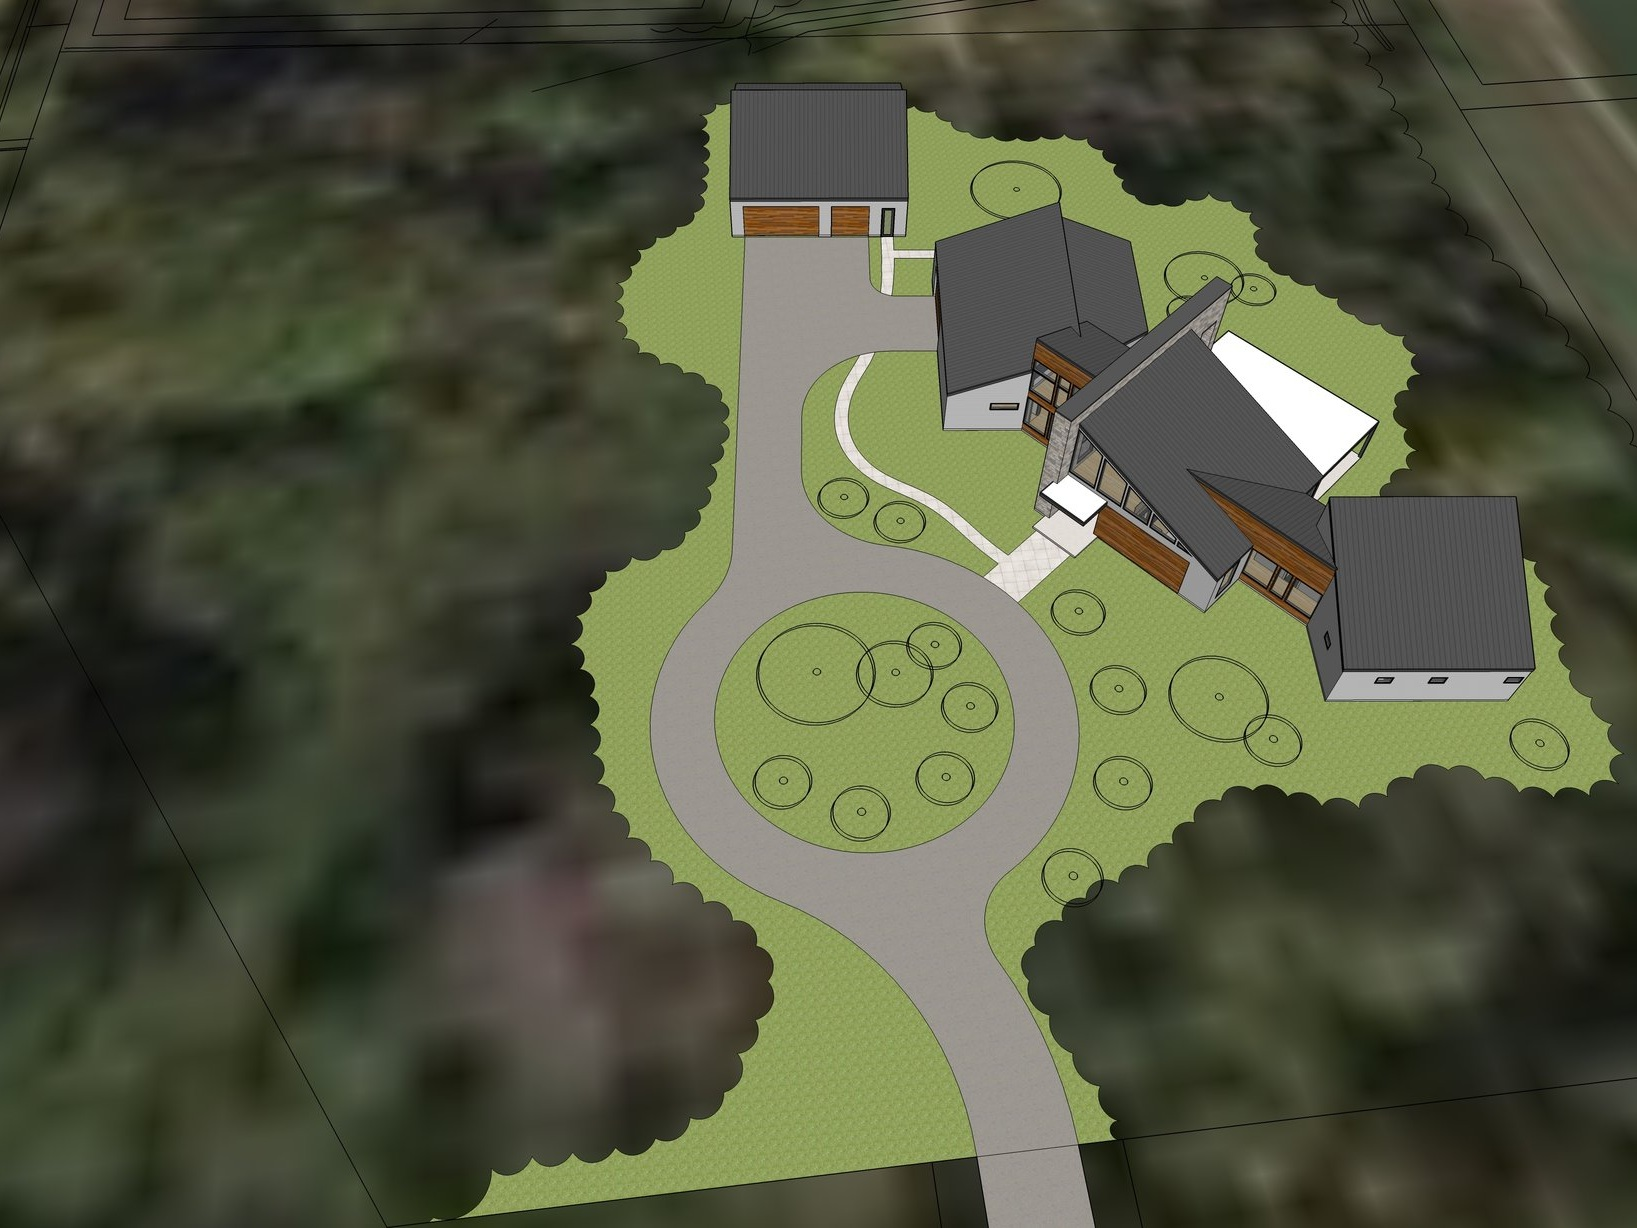 020717+House+Overview.jpg